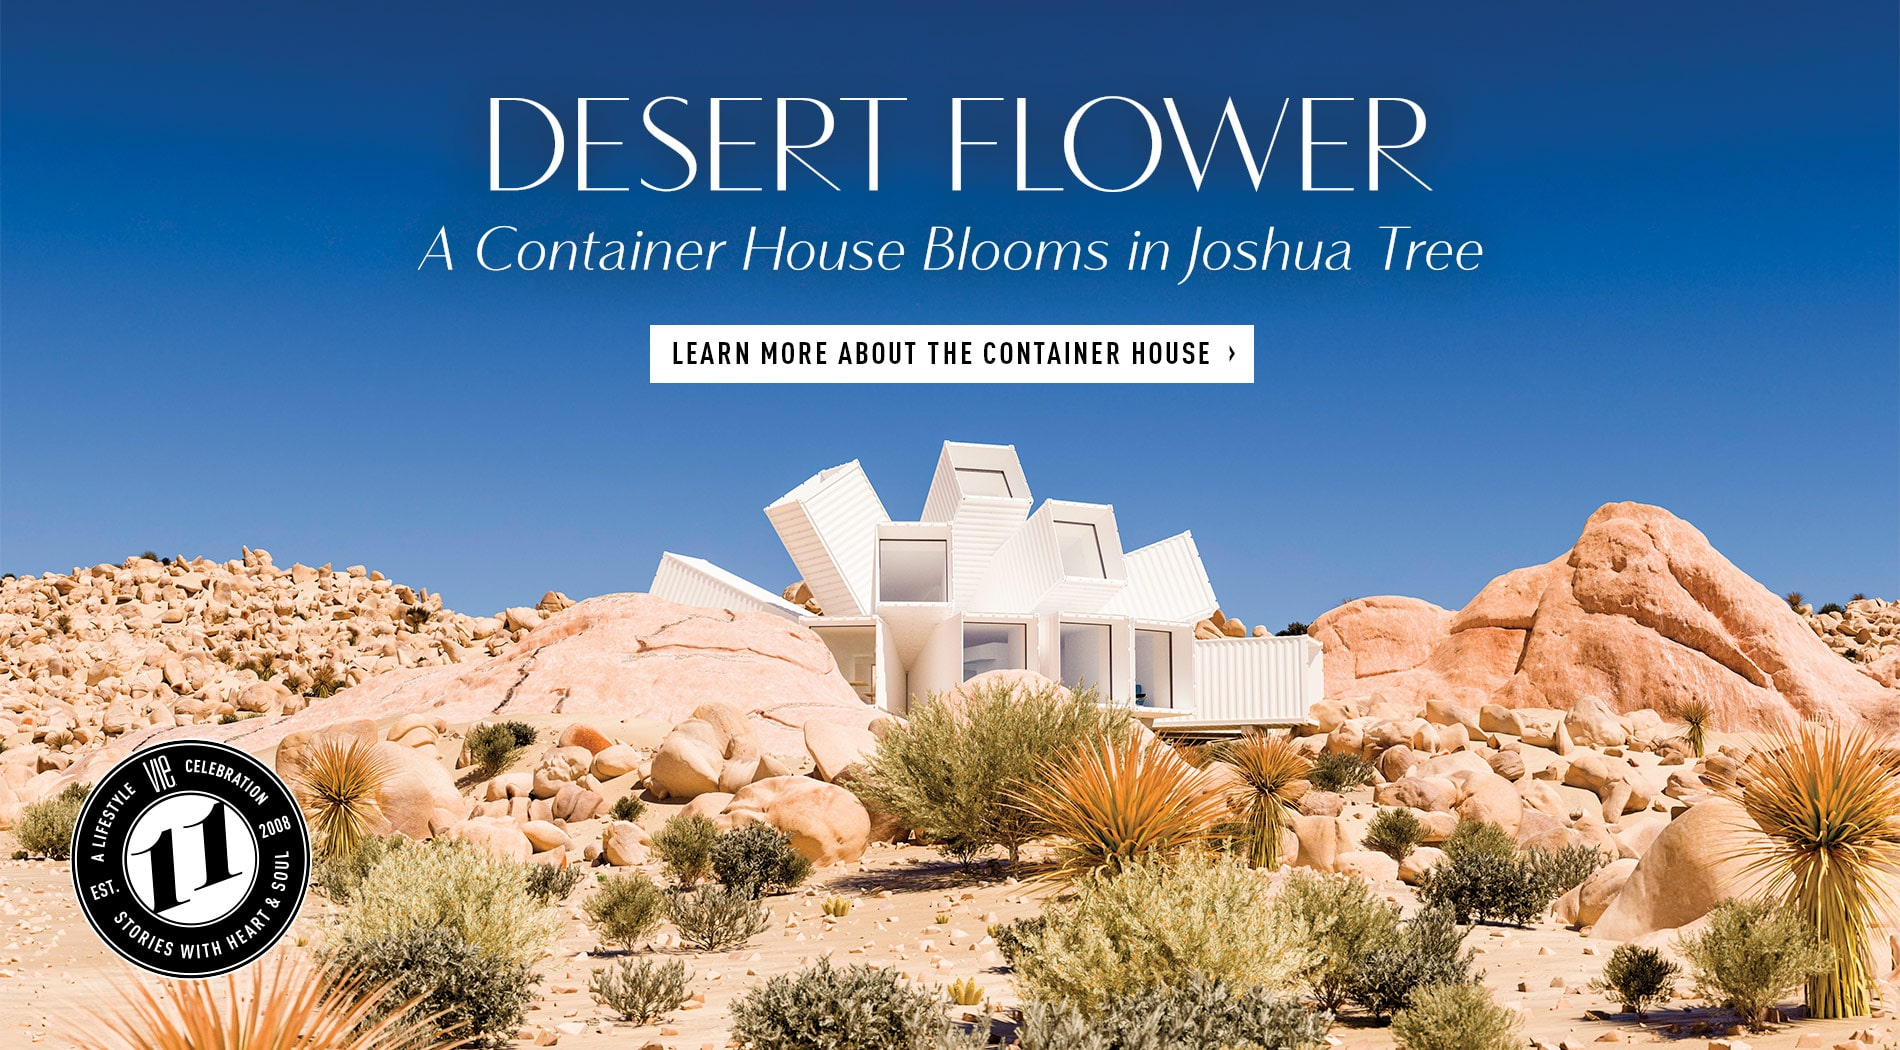 VIE Magazine - August 2019 - The Architecture and Design Issue - Joshua Tree Container House